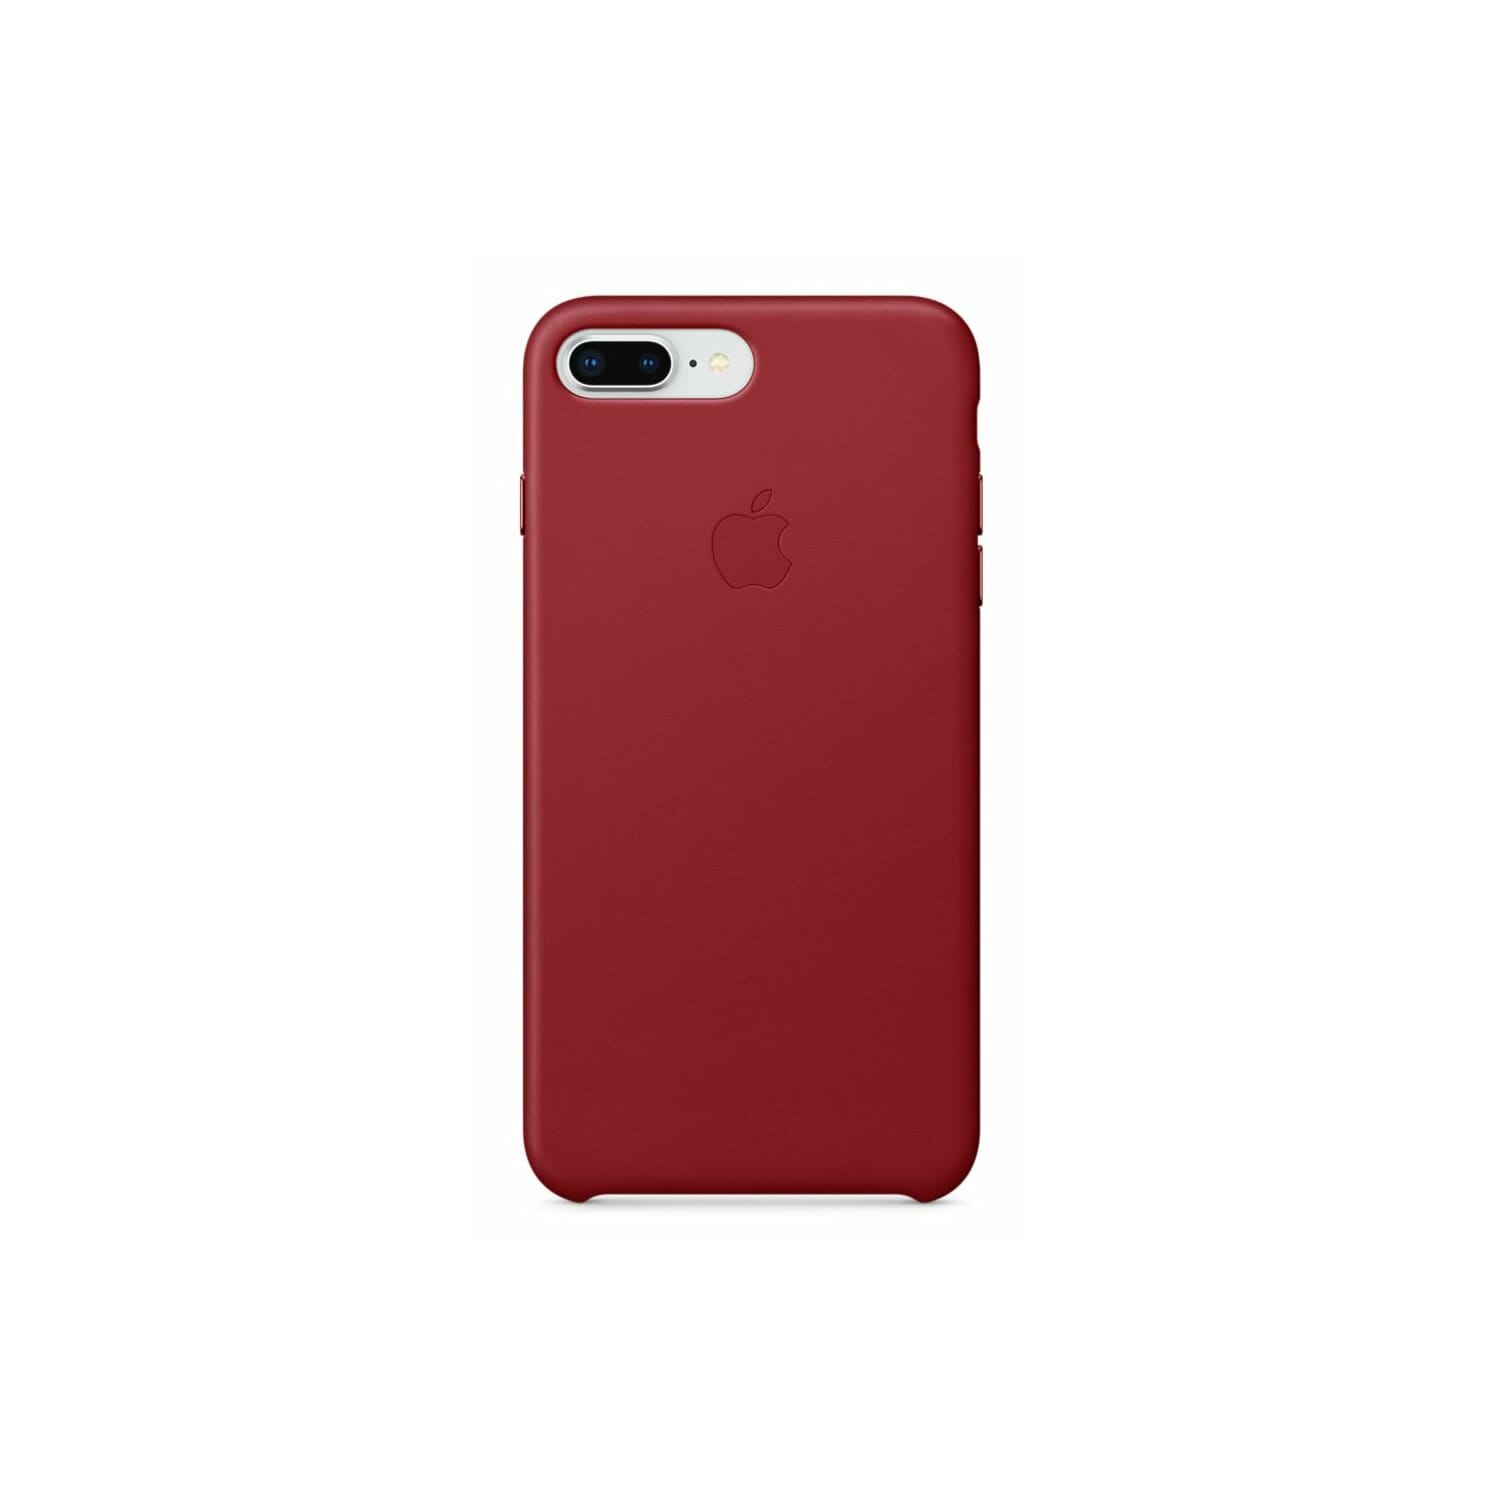 Skórzane etui do APPLE iPhone 8 Plus / 7 Plus (PRODUCT)RED MQHN2ZM/A